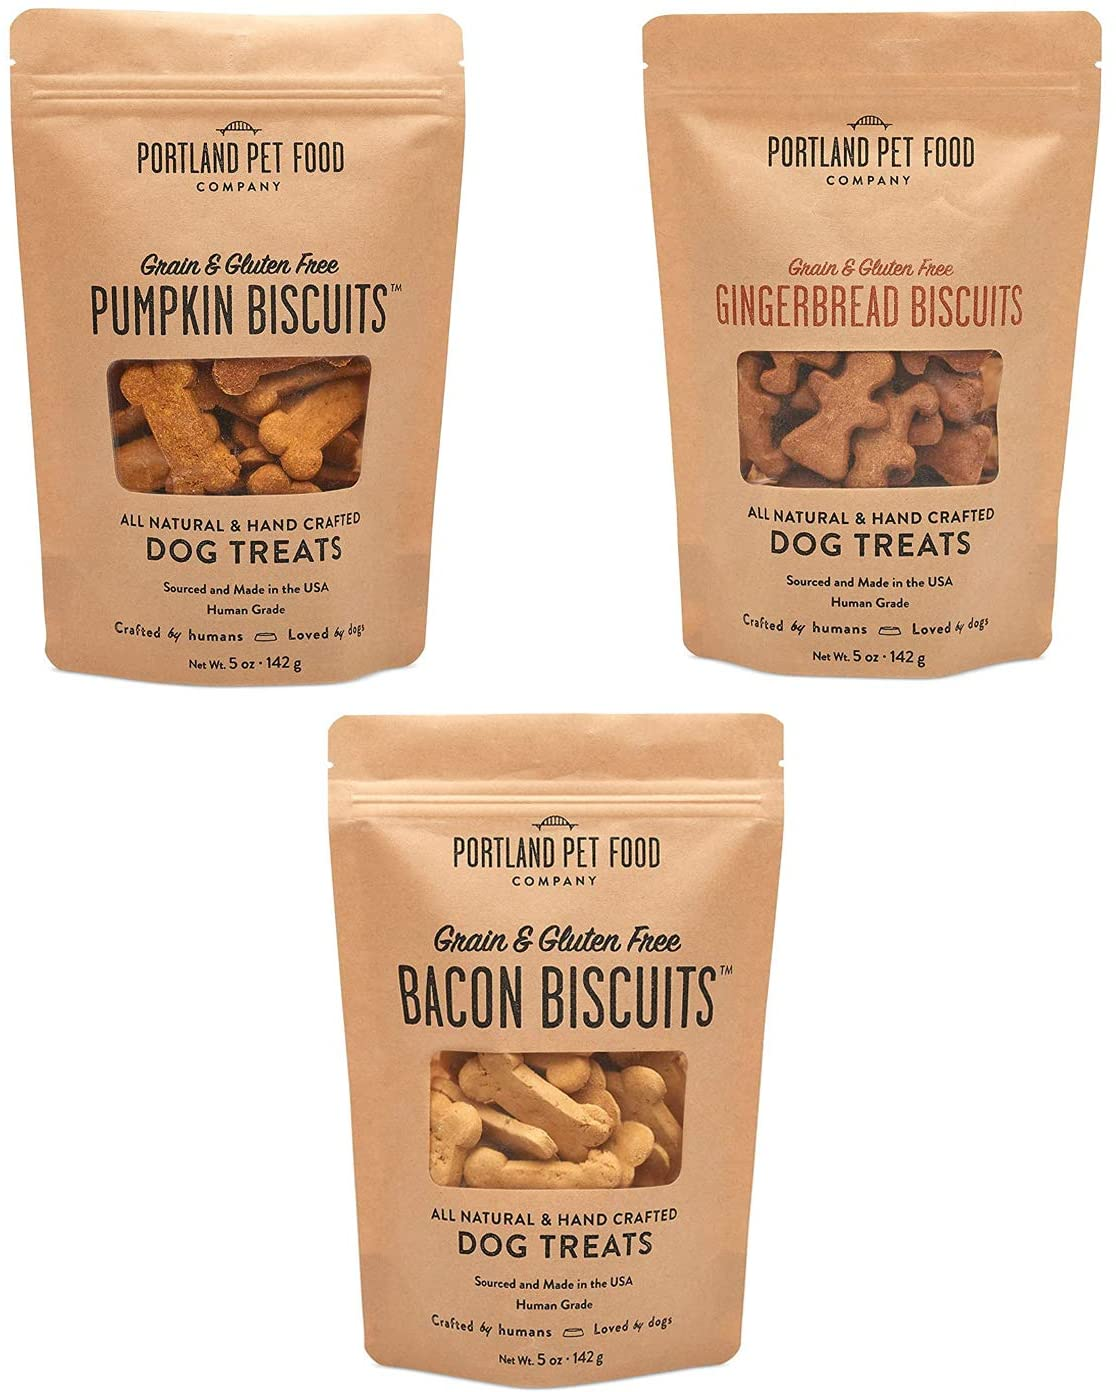 Portland Pet Food Company All-Natural Dog Treat Biscuits – Handcrafted Grain-Free, Gluten-Free, USA Sourced Baked & Made, Human-Grade, All Natural Limited Ingredients, 5 Ounces